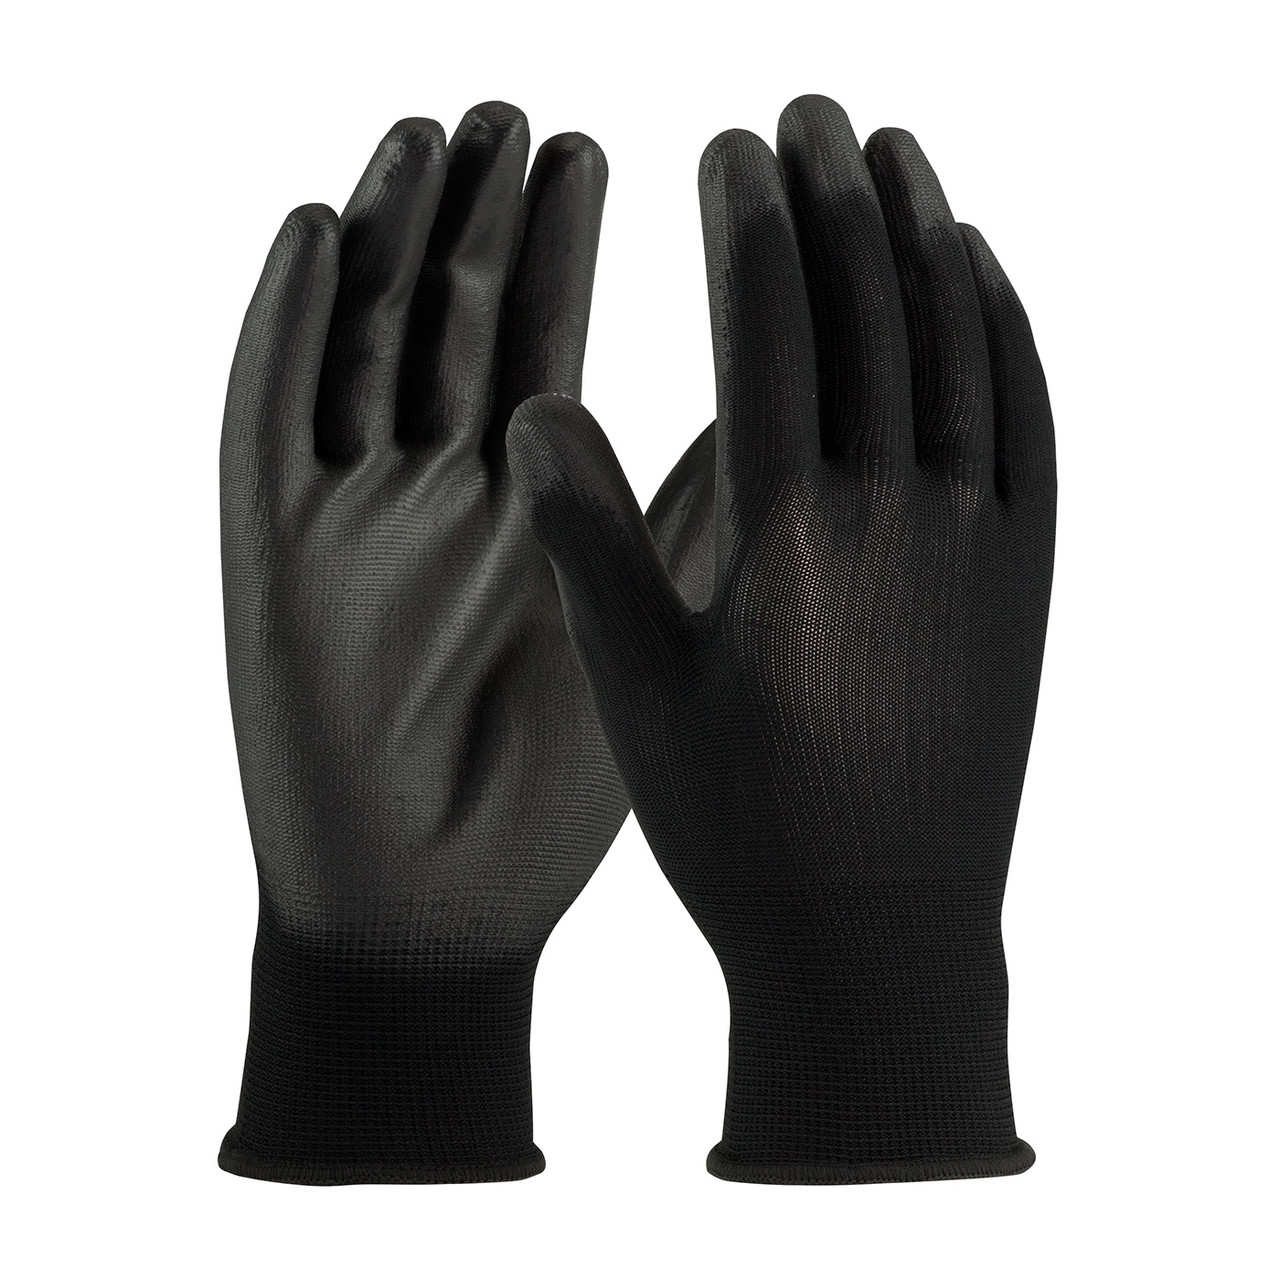 PIP Seamless Knit Polyester Glove with Polyurethane Coated Flat Grip LARGE EDP: 33-B115